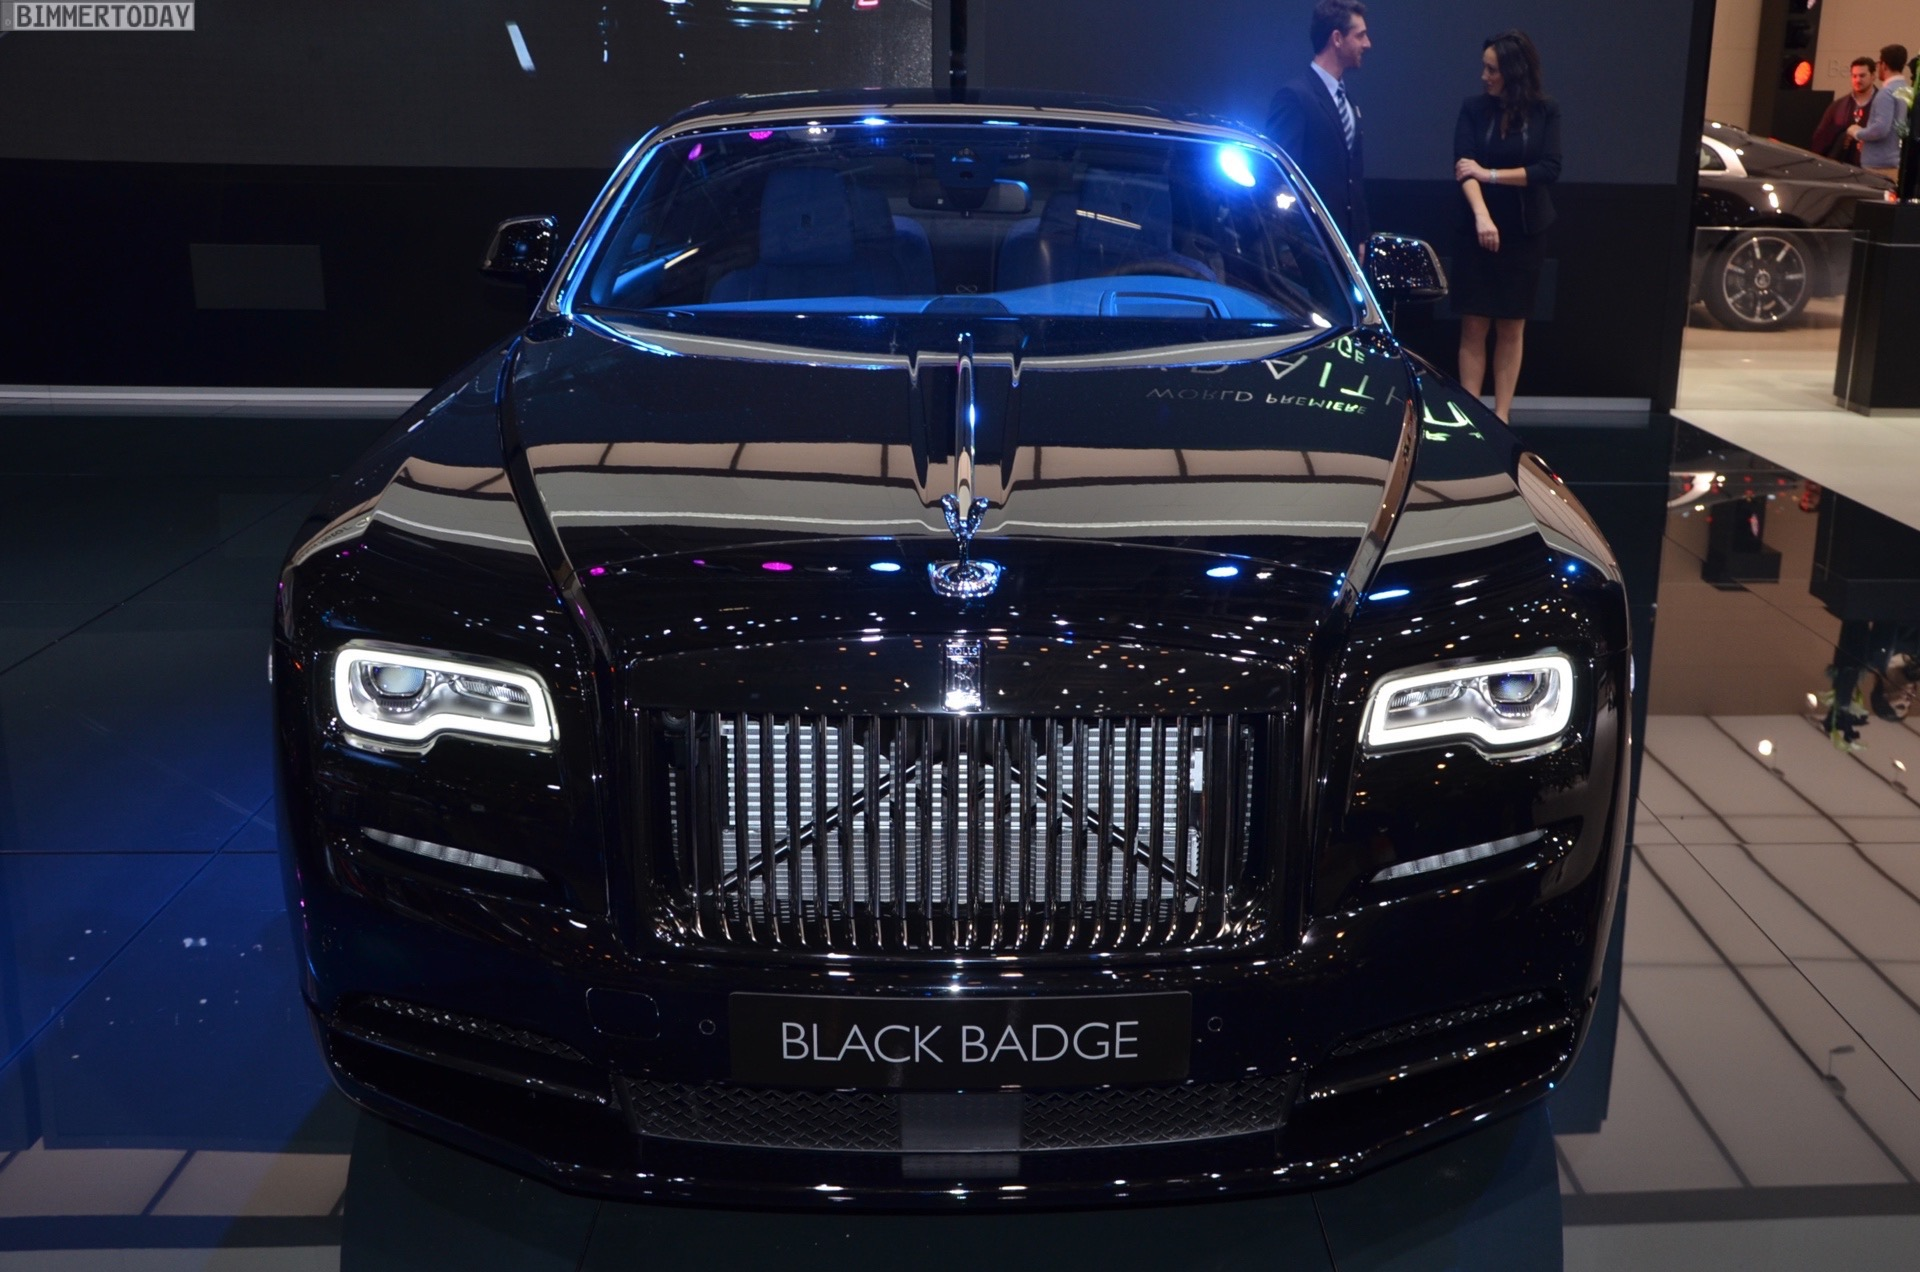 Rolls Royce Handed Over A Wraith Black Badge To The First Female Owner